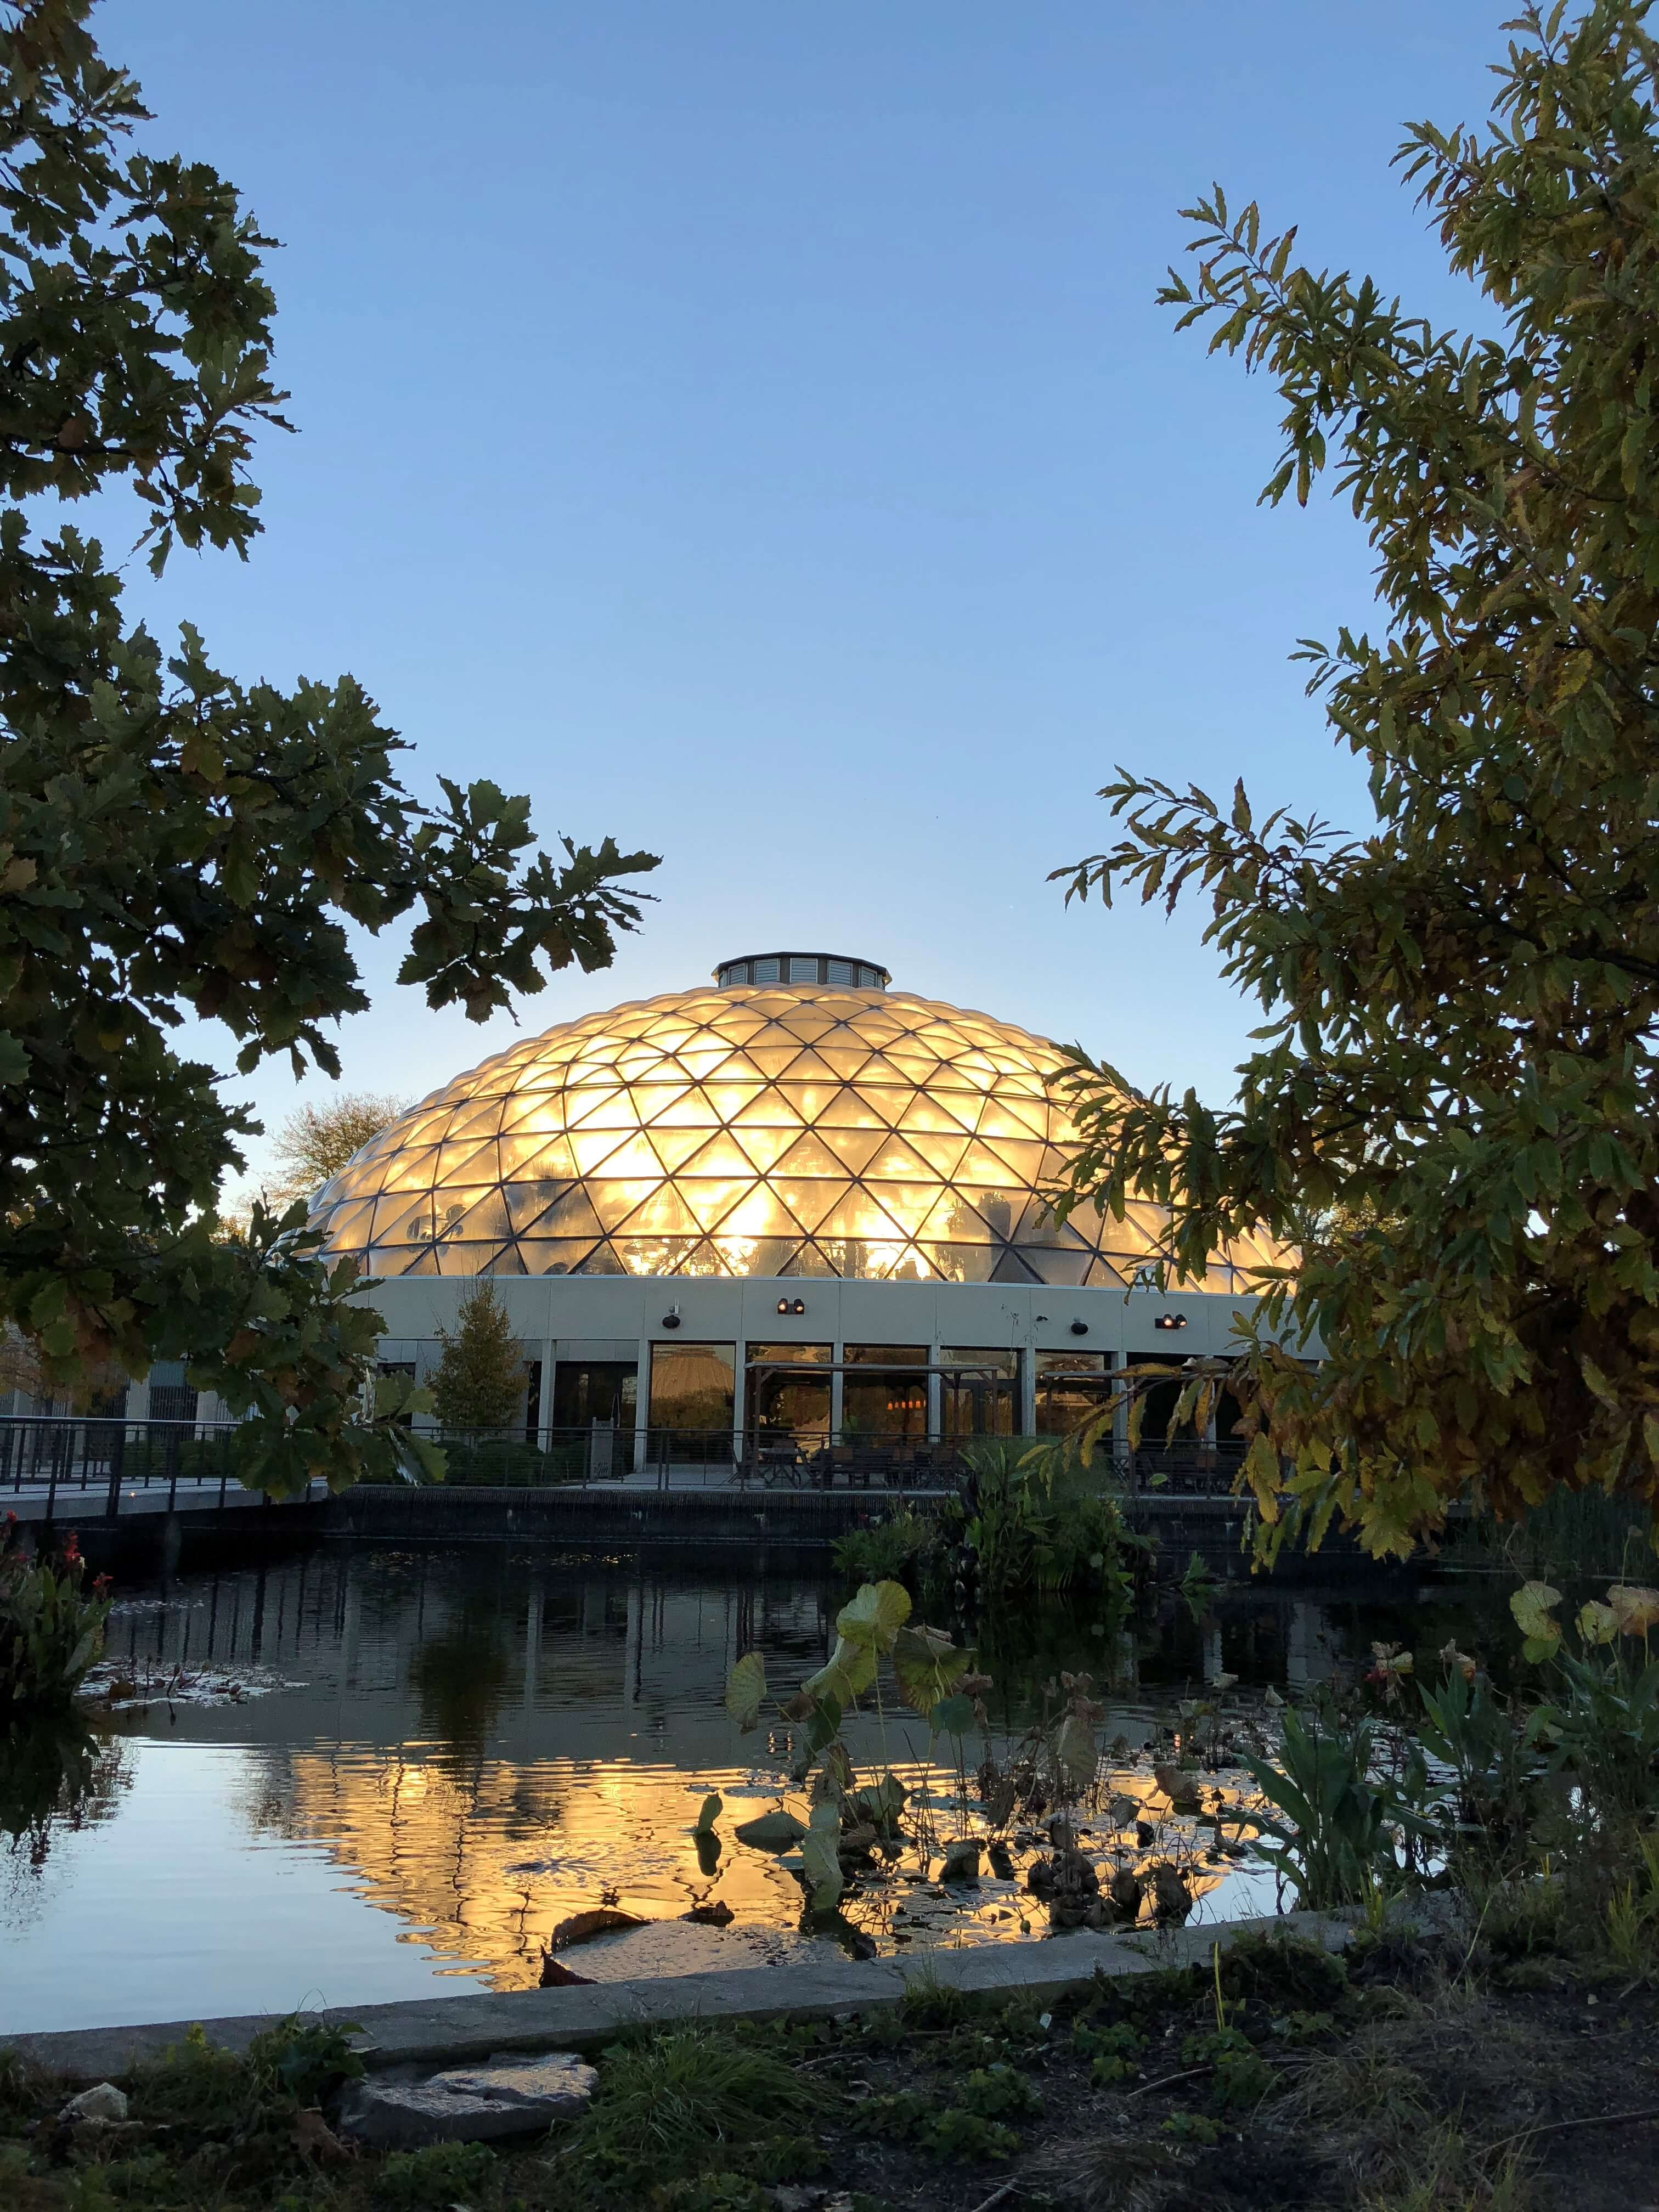 Sunrise behind the conservatory dome makes a beautiful early morning entrance. Photo by Leslie Hunter, Oct. 17, 2018.